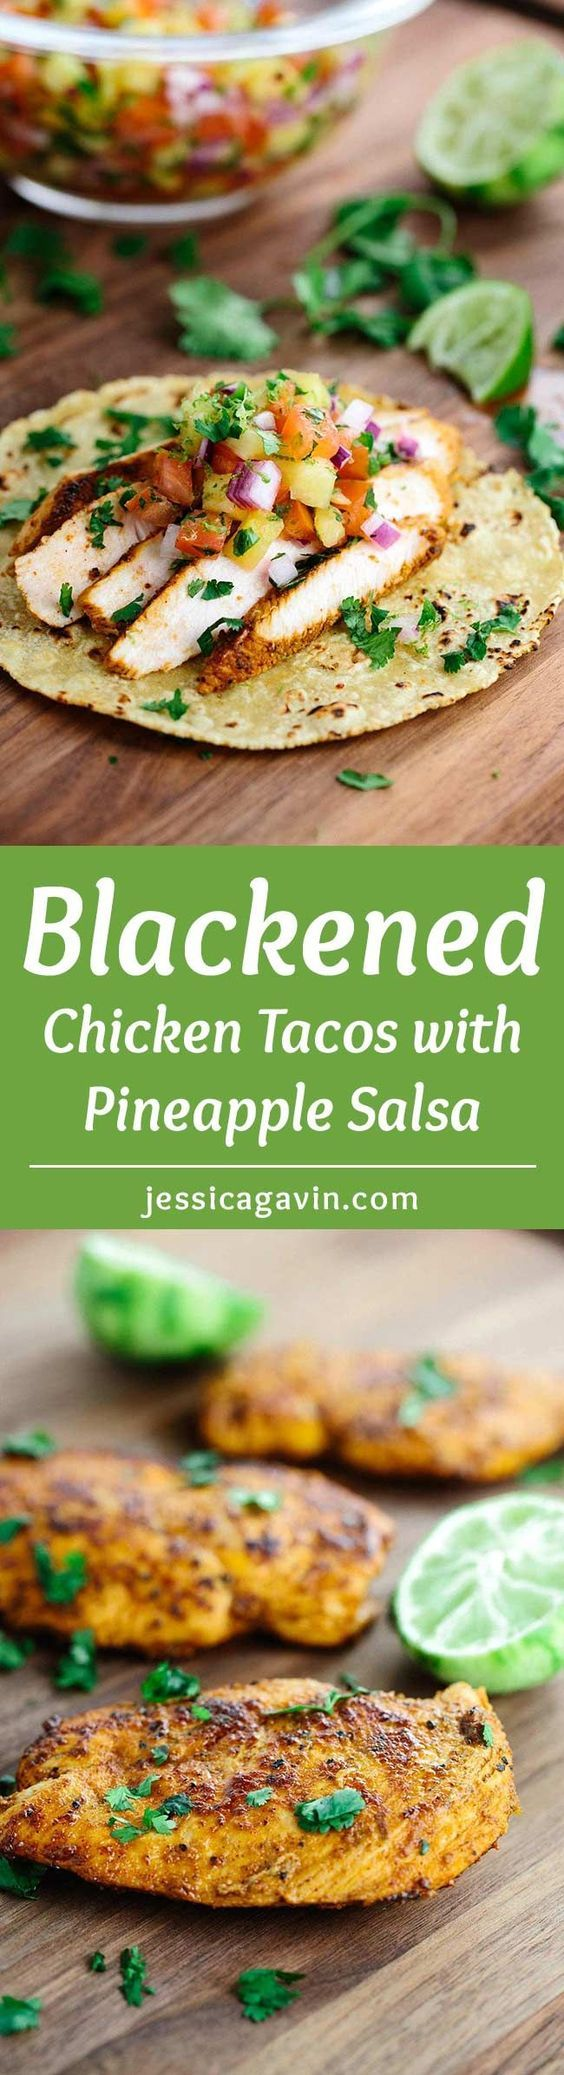 Craving tacos?  Go for a lighter-fare recipe to keep you on track, like this blackened chicken tacos with pineapple salsa dish!